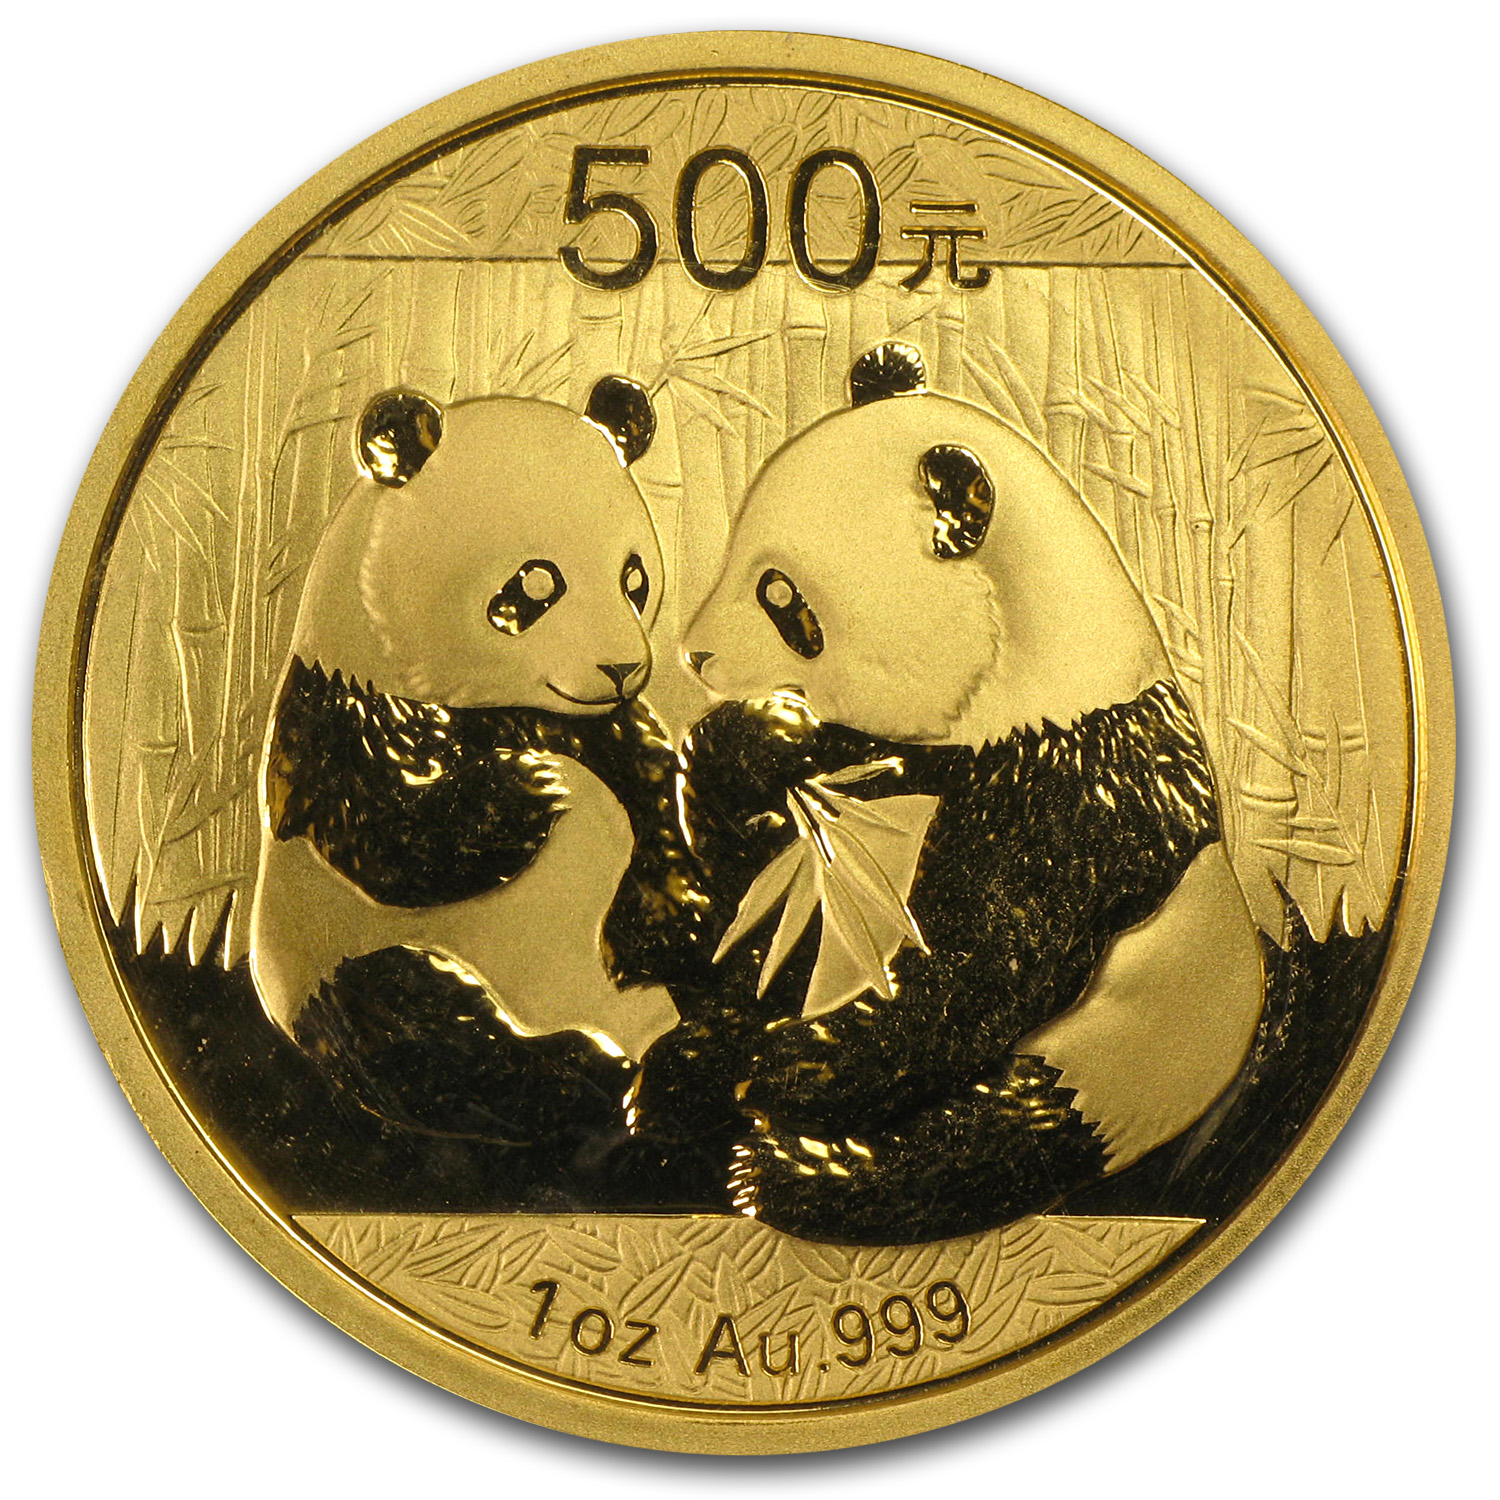 2009 1 oz Gold Chinese Panda BU (Sealed)